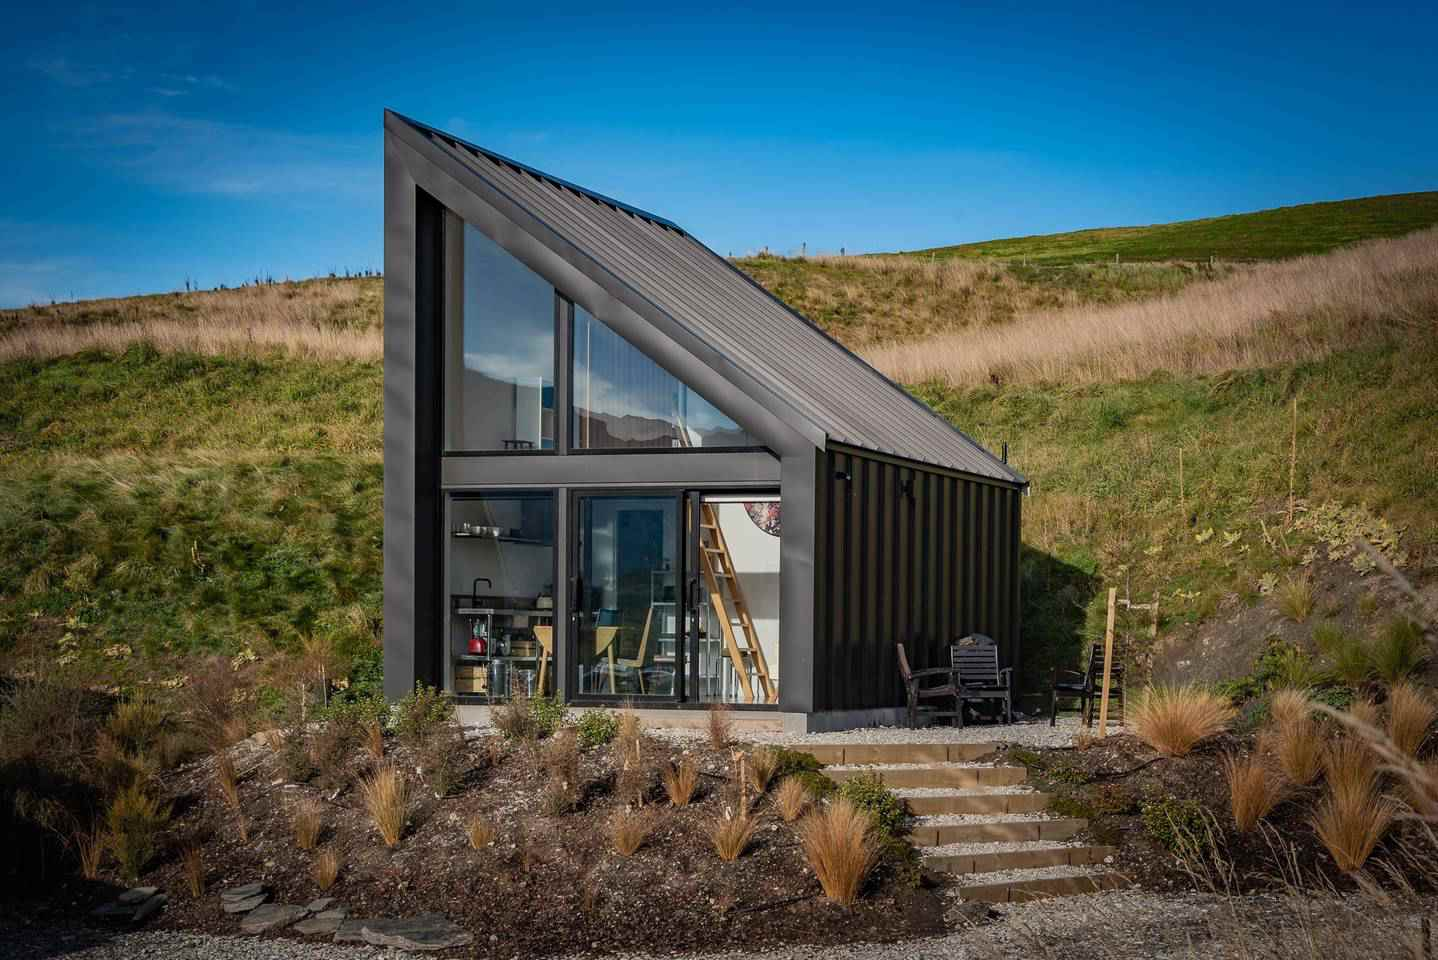 Pleasant 13 Tiny Houses For Rent On Airbnb That Make It Easy To See Best Image Libraries Weasiibadanjobscom